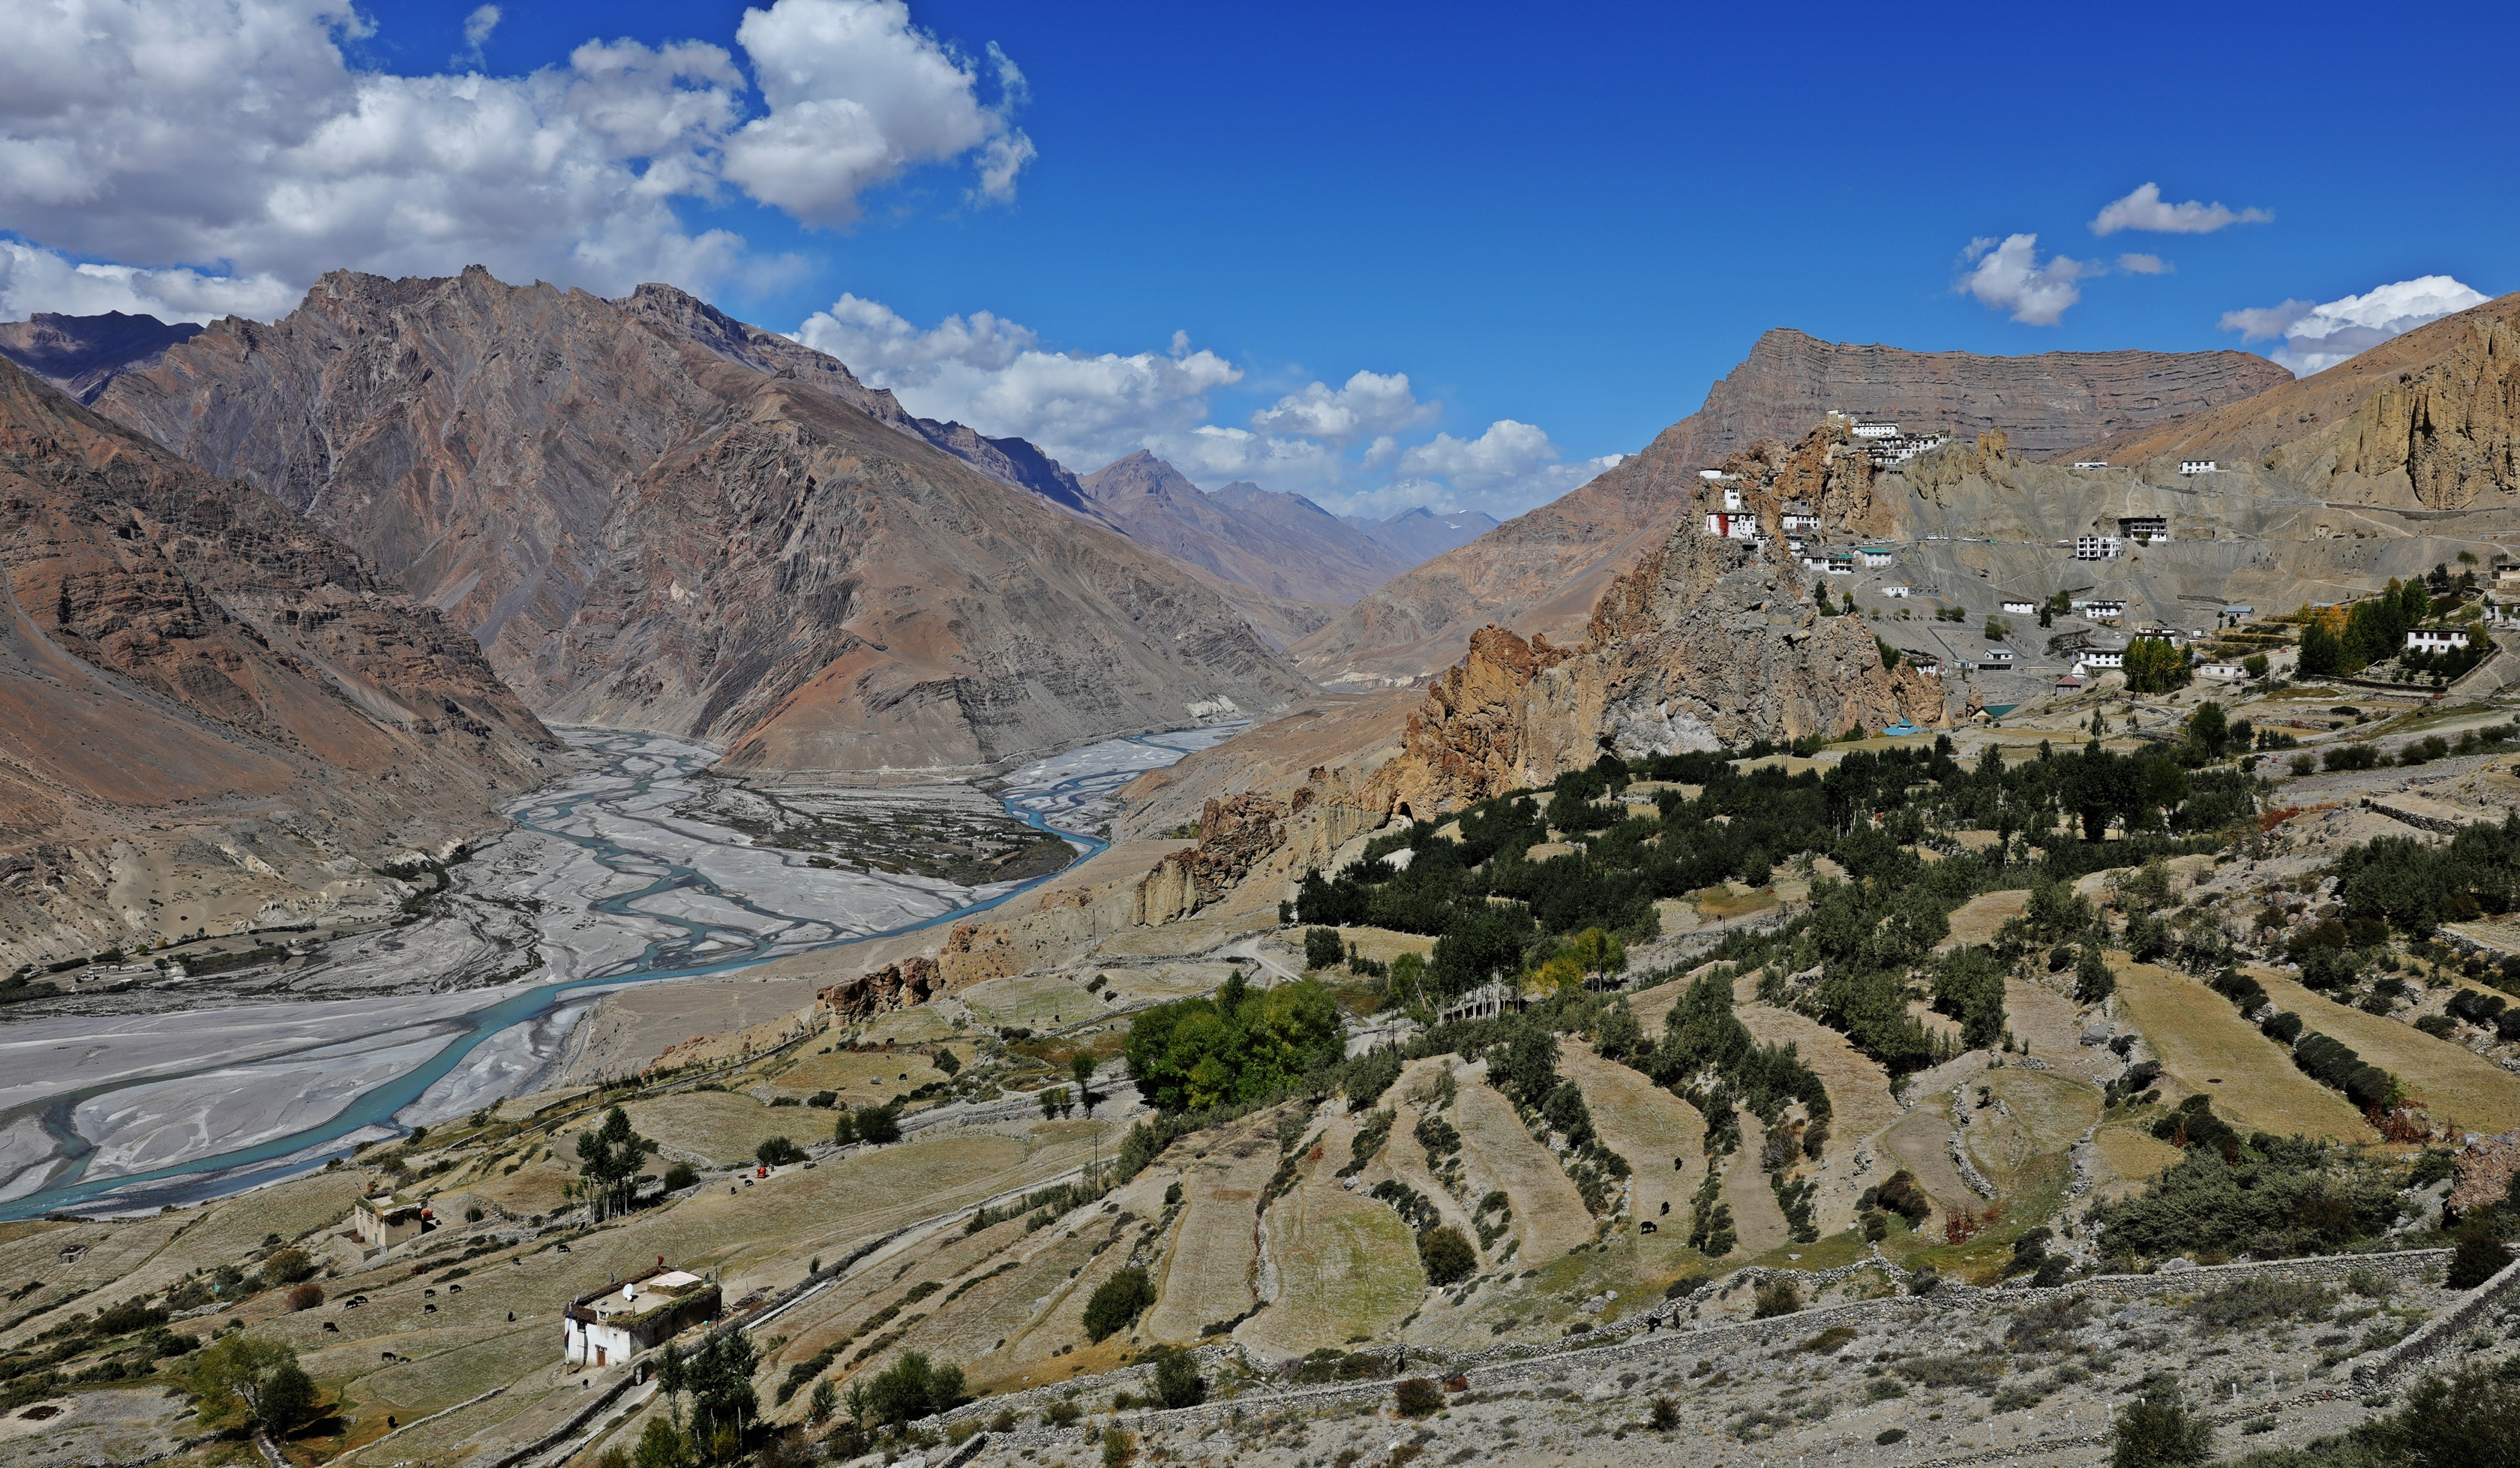 Confluence of Spiti and Pin Rivers below Dhankar Gompa